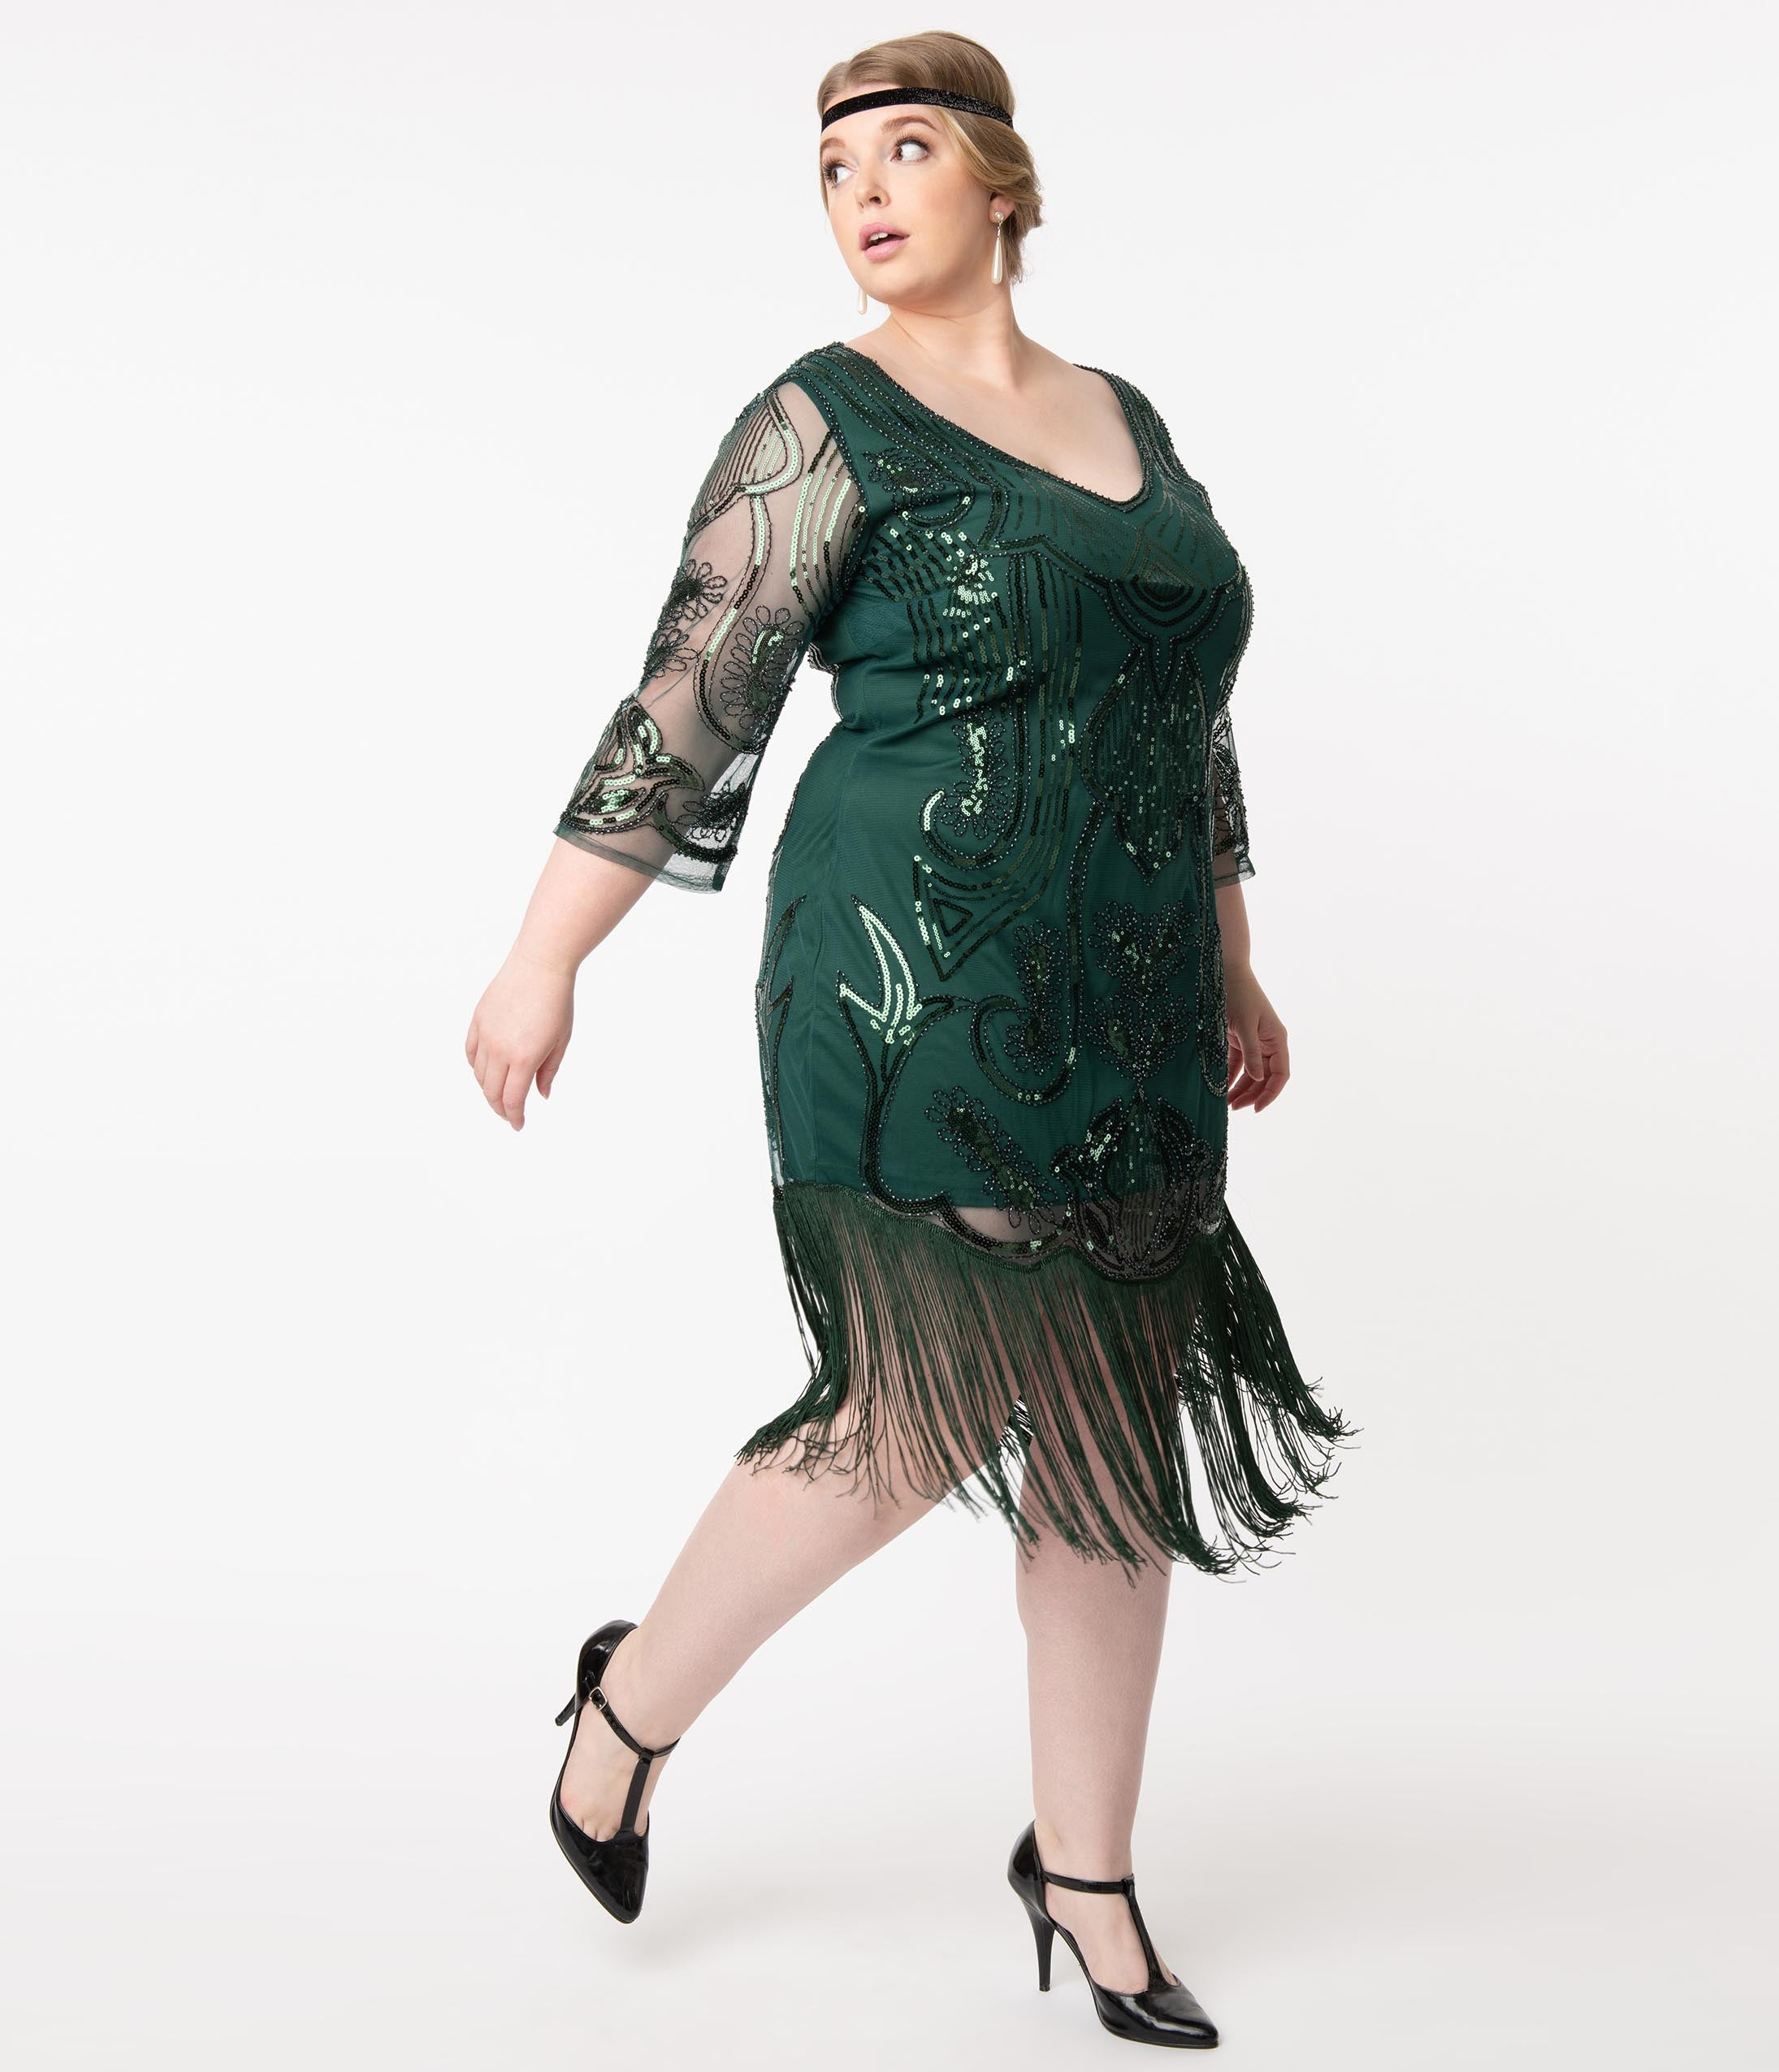 1920s Plus Size Flapper Dresses, Gatsby Dresses, Flapper Costumes Unique Vintage Plus Size Emerald Sequin Margaux Flapper Dress $110.00 AT vintagedancer.com